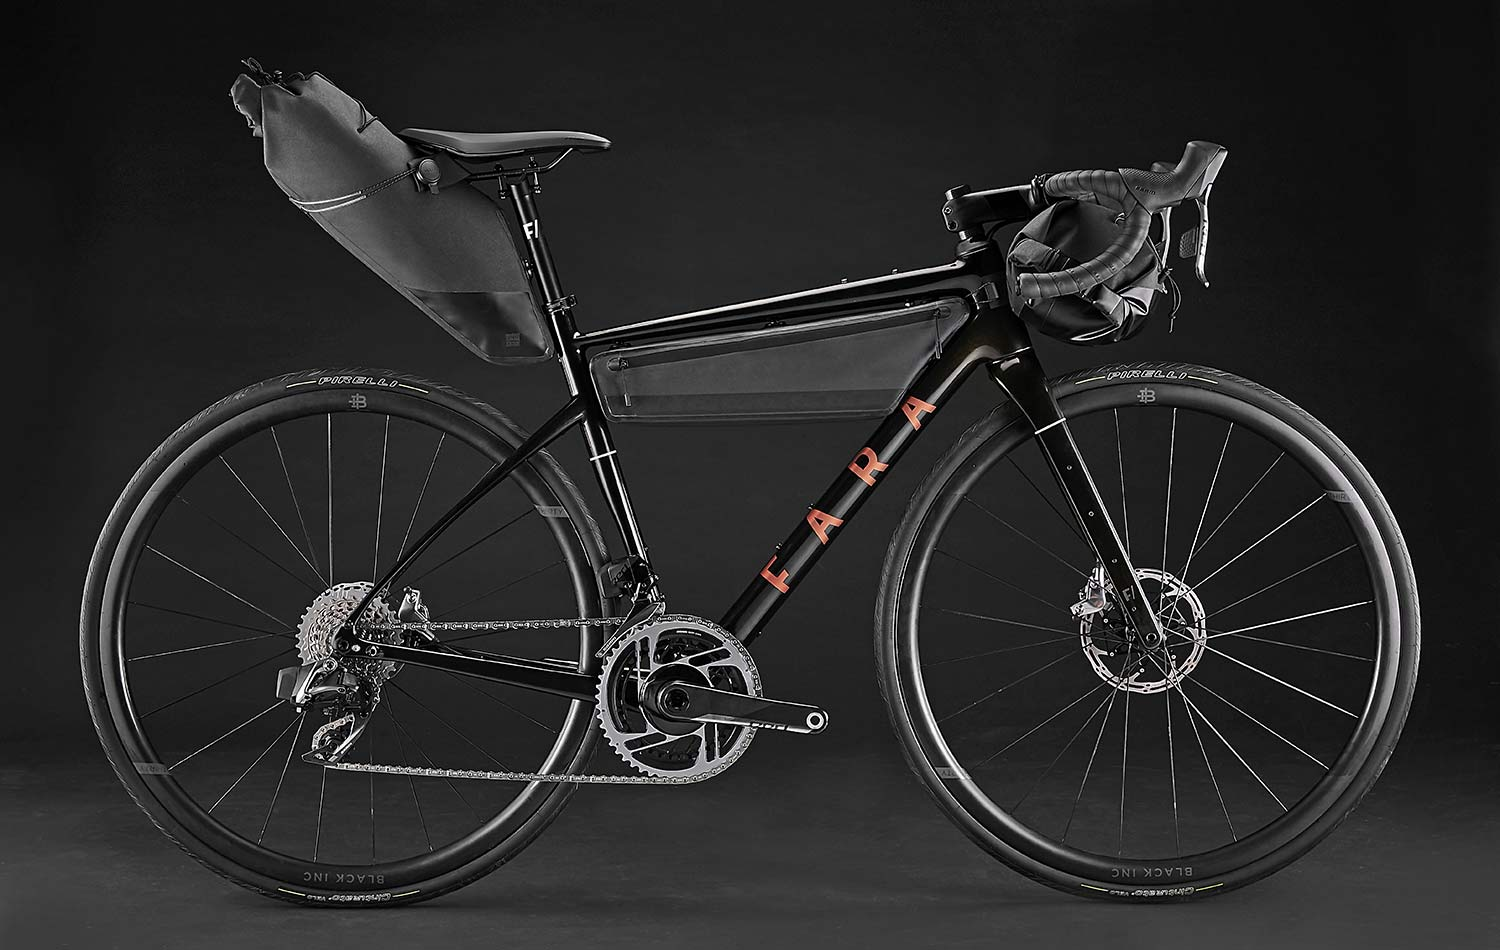 2021 Fara F-AR all-road bike ltd Signature Edition, carbon endurance gravel road bike with integrated bikepacking bags,